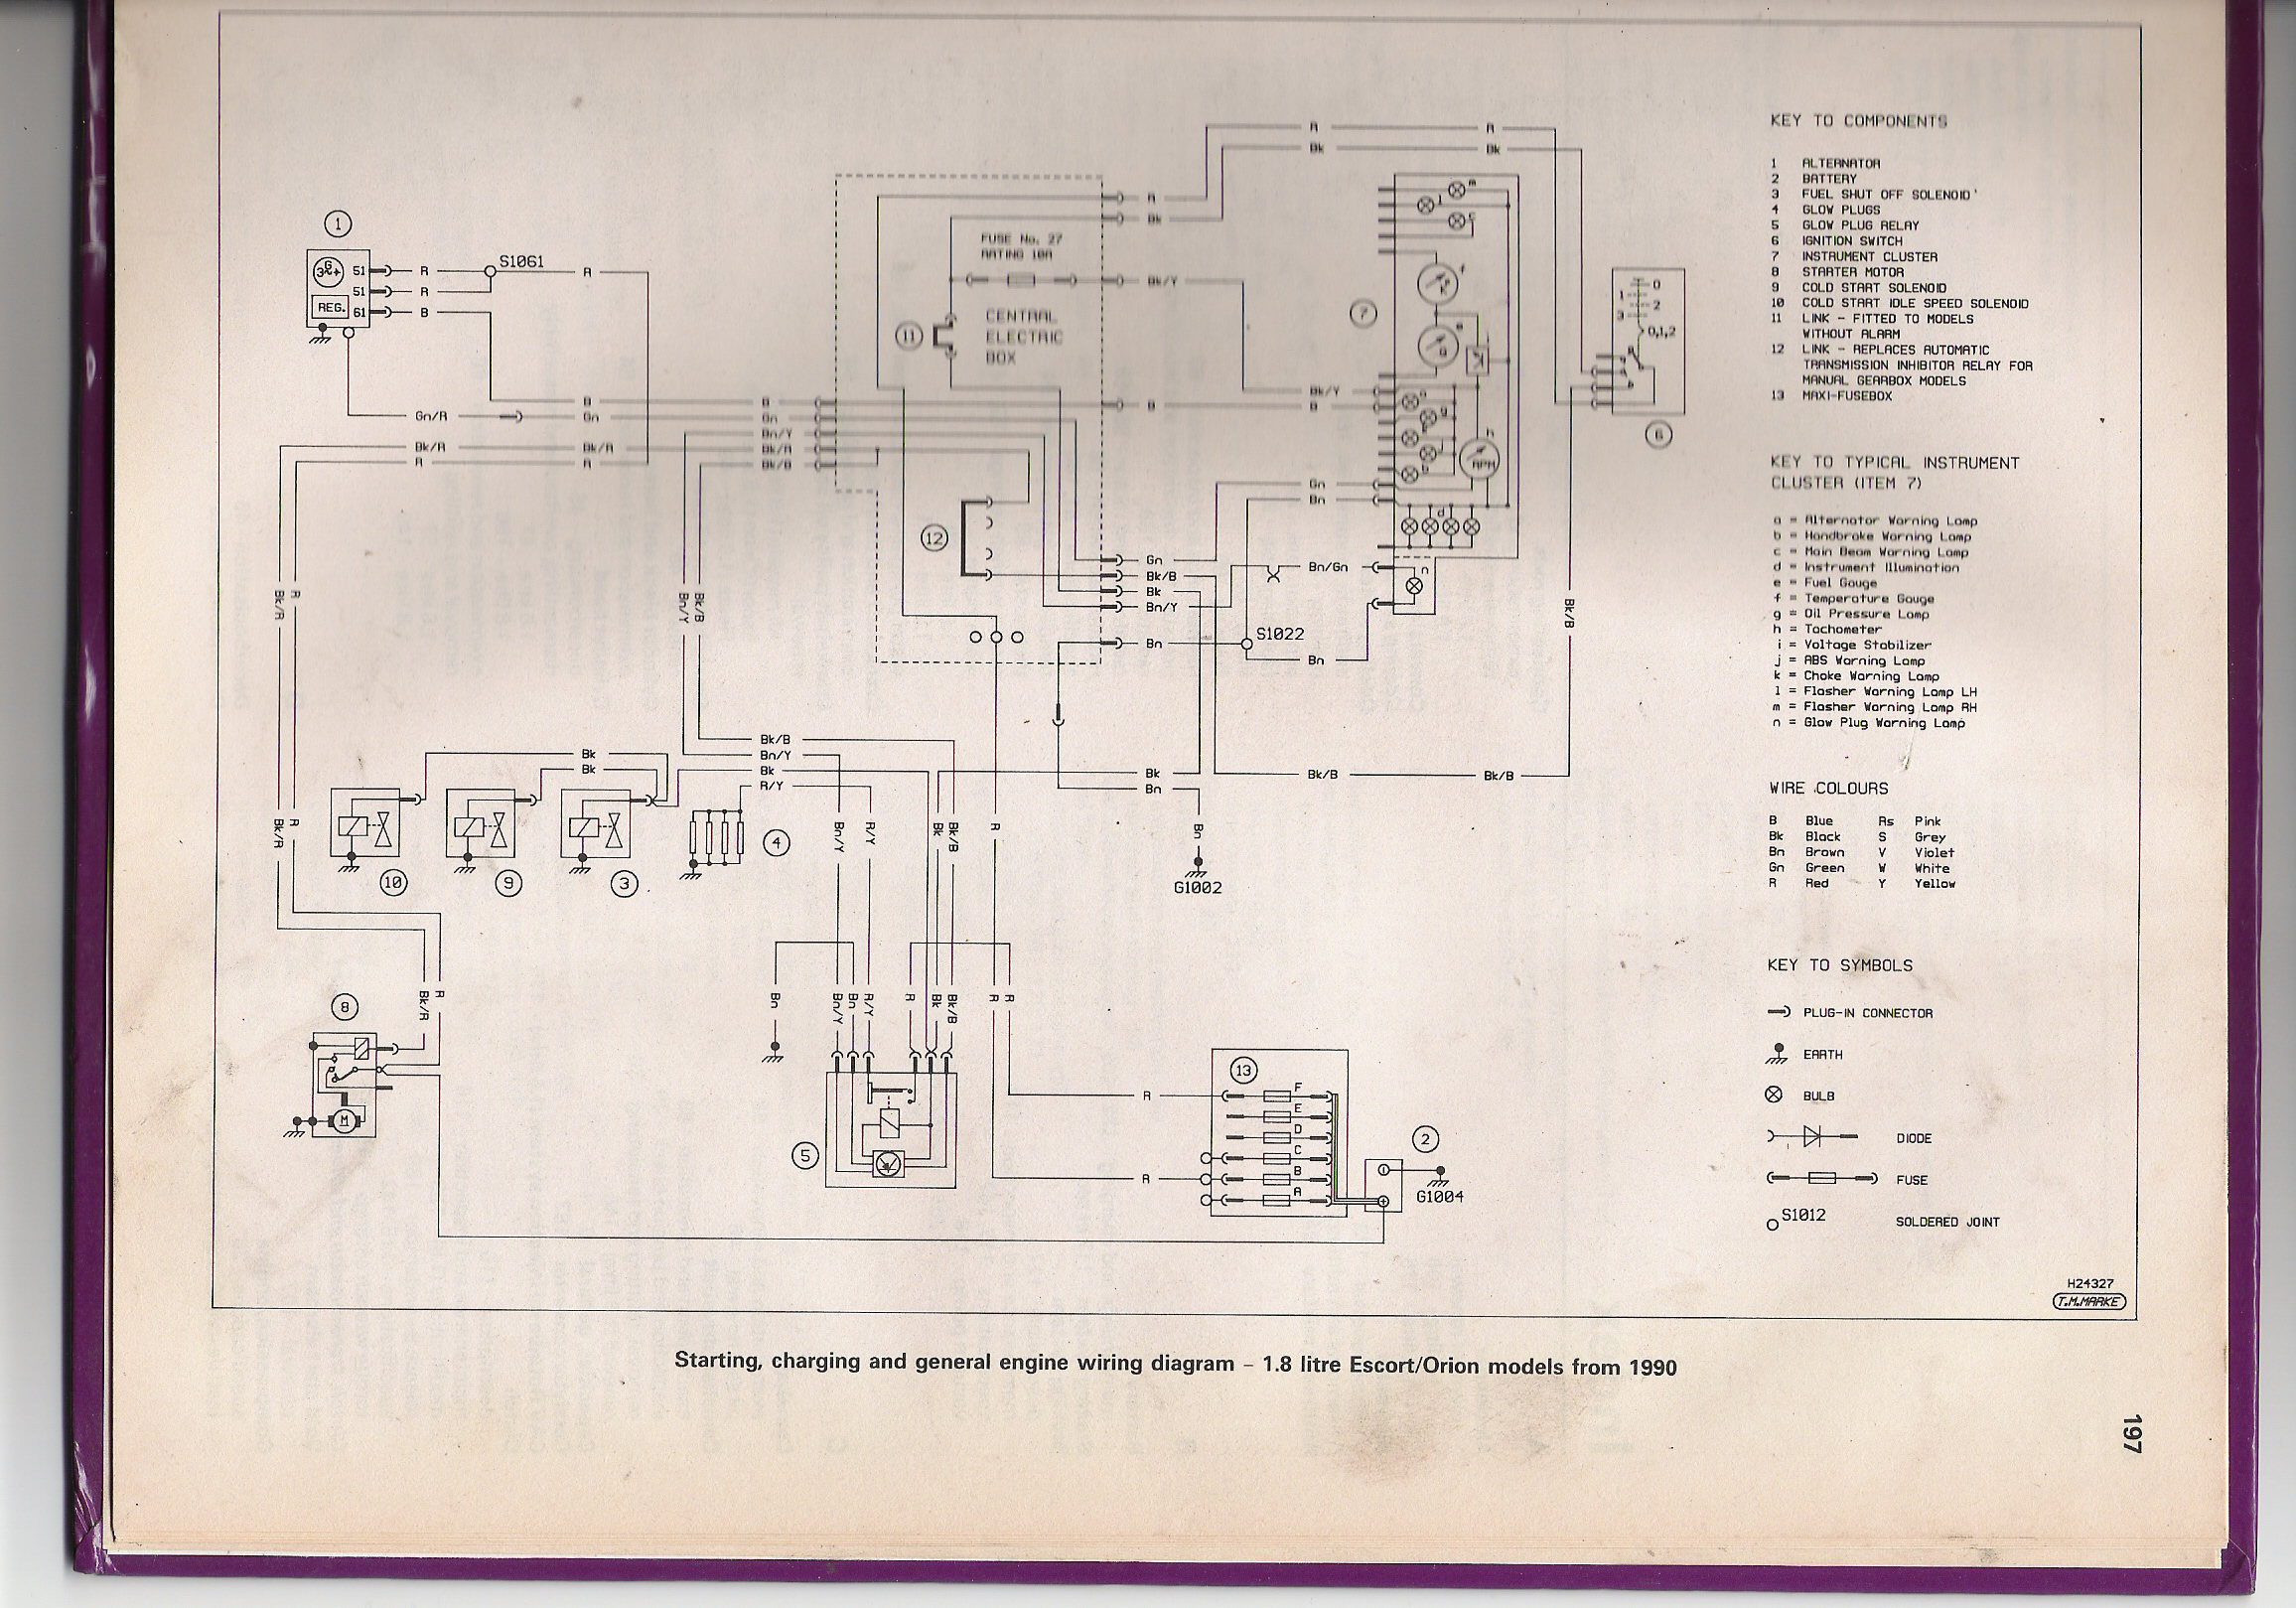 fordwiringdl mk4 wiring diagram wiring diagram symbols \u2022 wiring diagrams j 1999 ford escort wiring diagram pdf at fashall.co